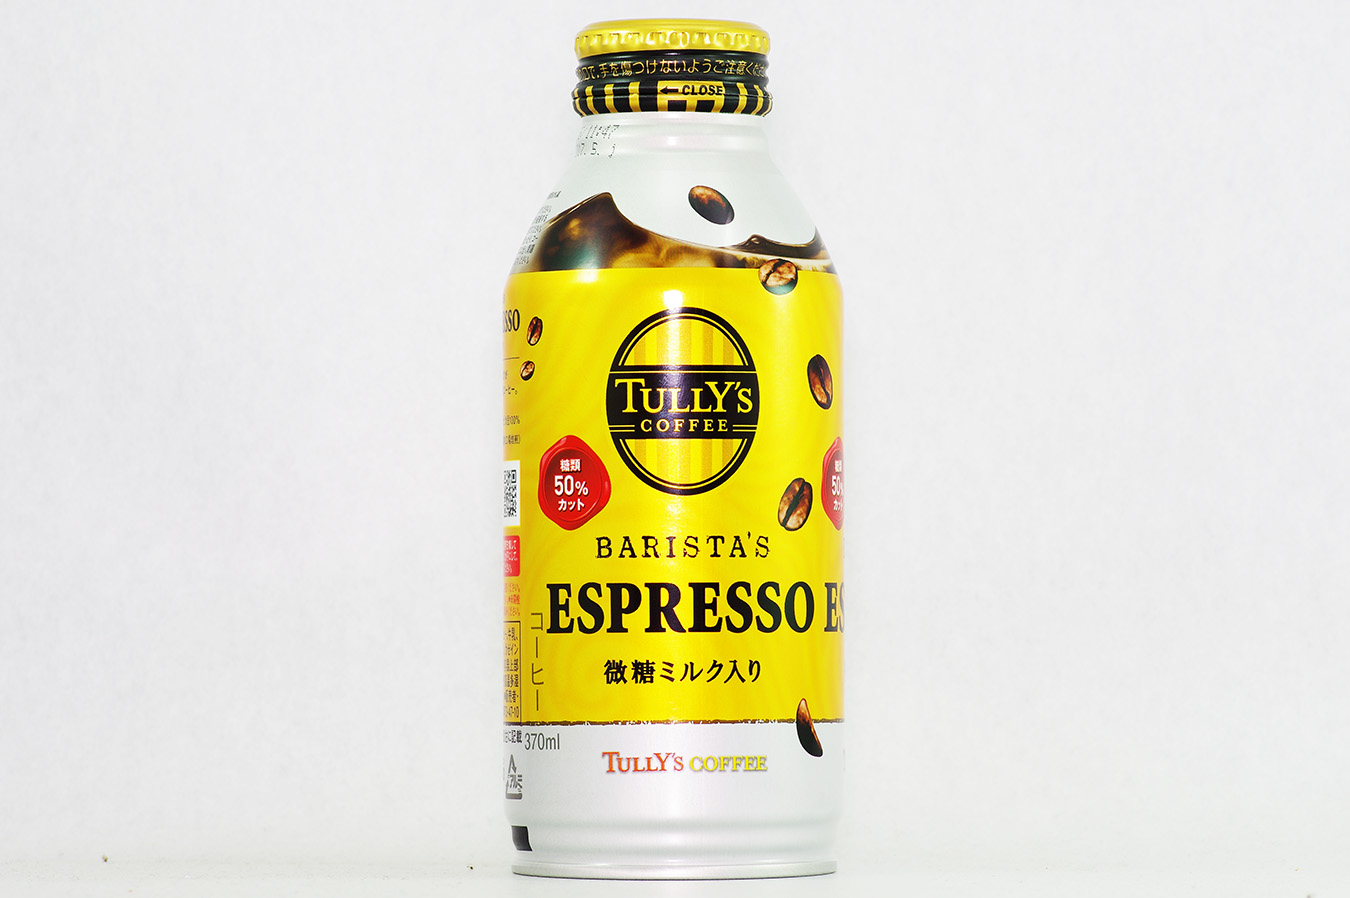 TULLY'S COFFEE BARISTA'S ESPRESSO 2016年4月